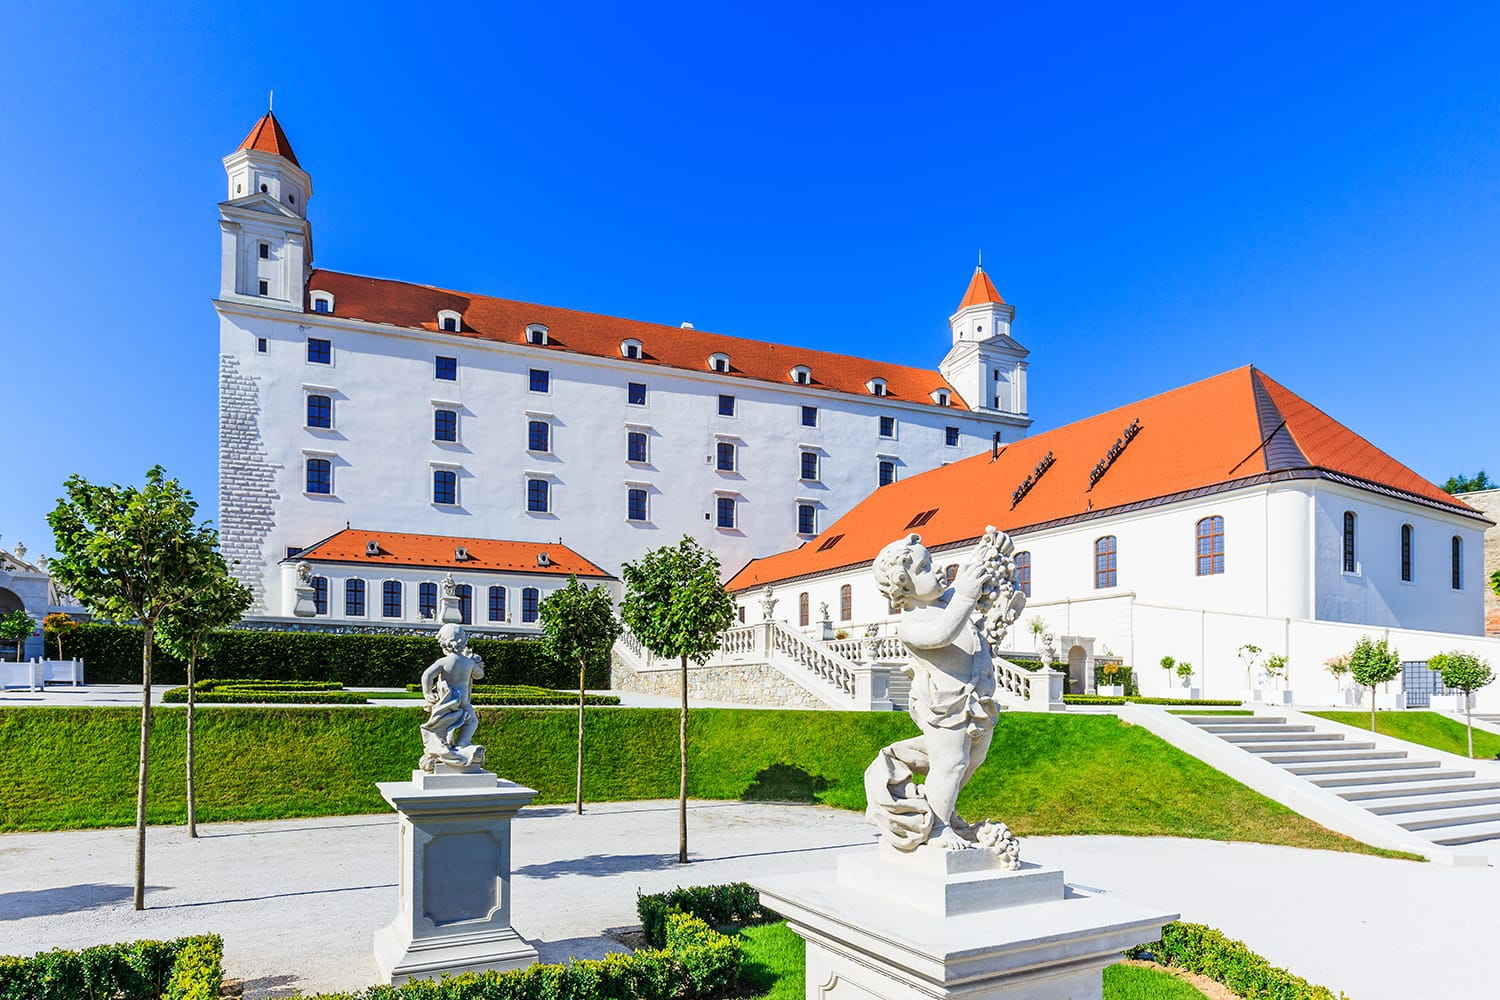 View of the Bratislava castle and its gardens.